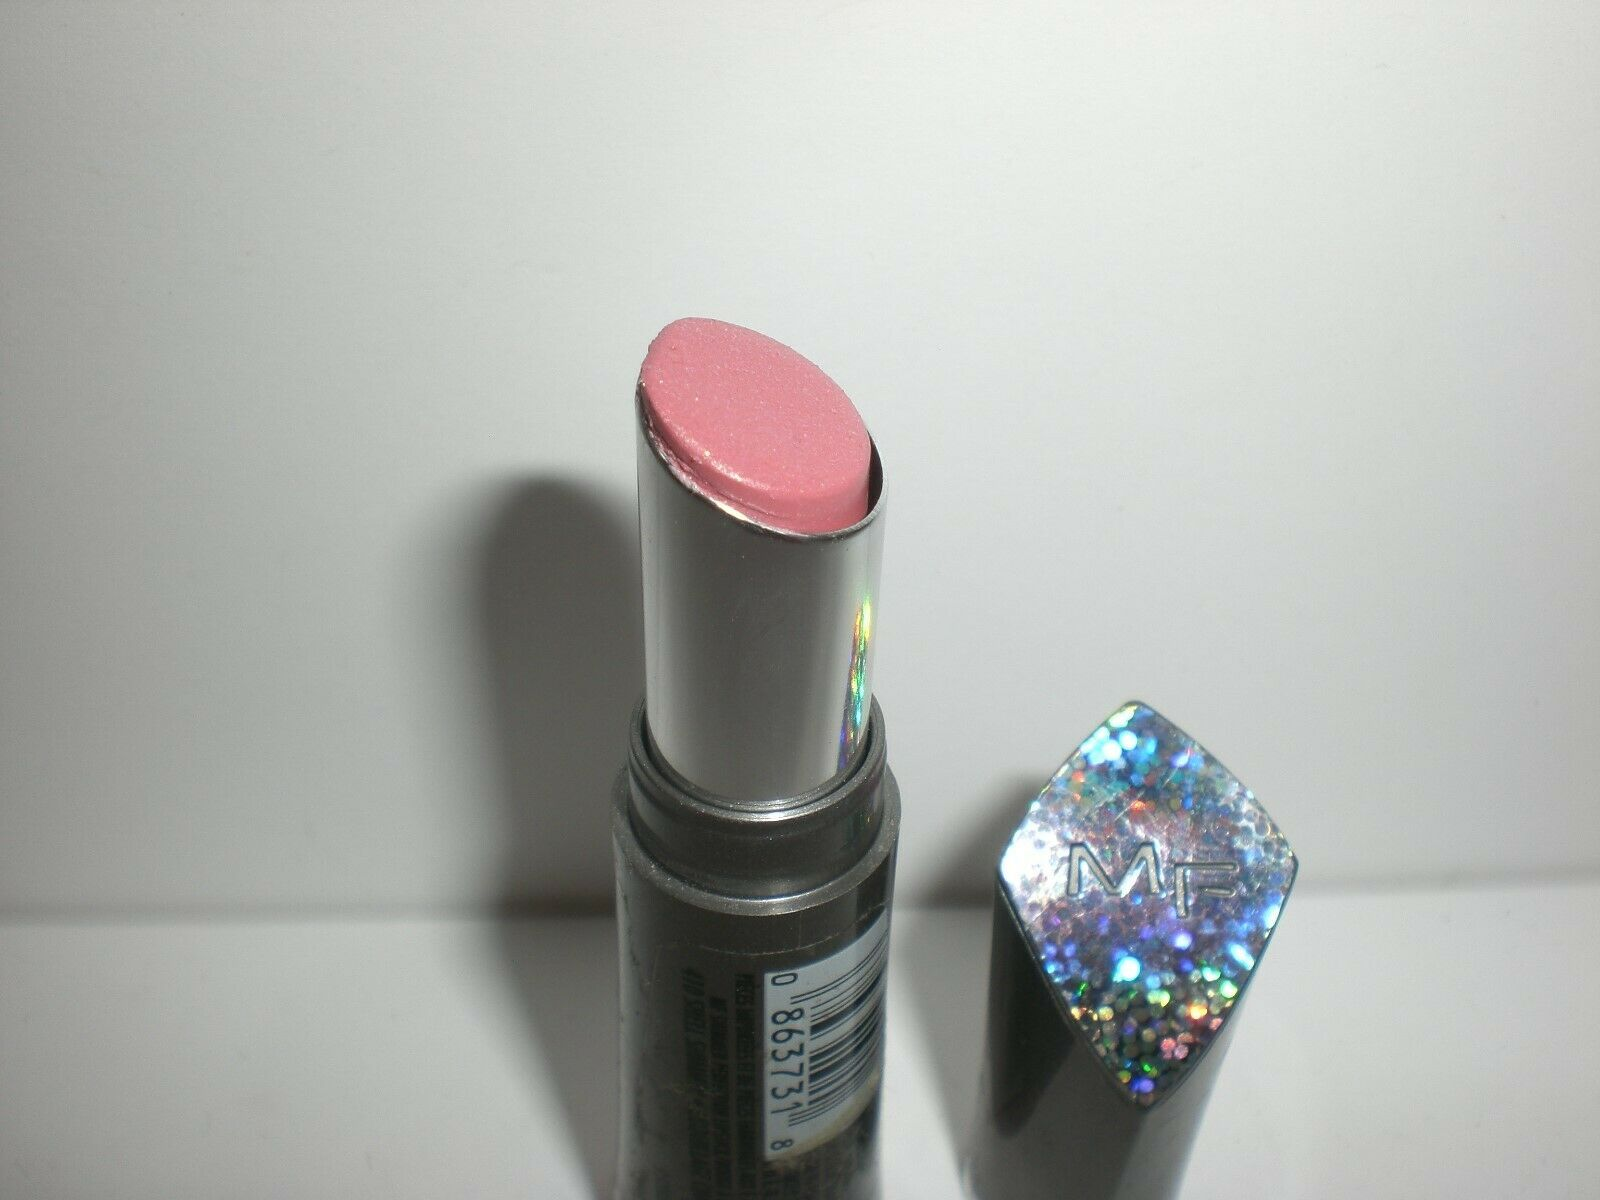 Max Factor Colour Color Perfection Lipstick Shell Shimmer #410 HTF IMPERFECT